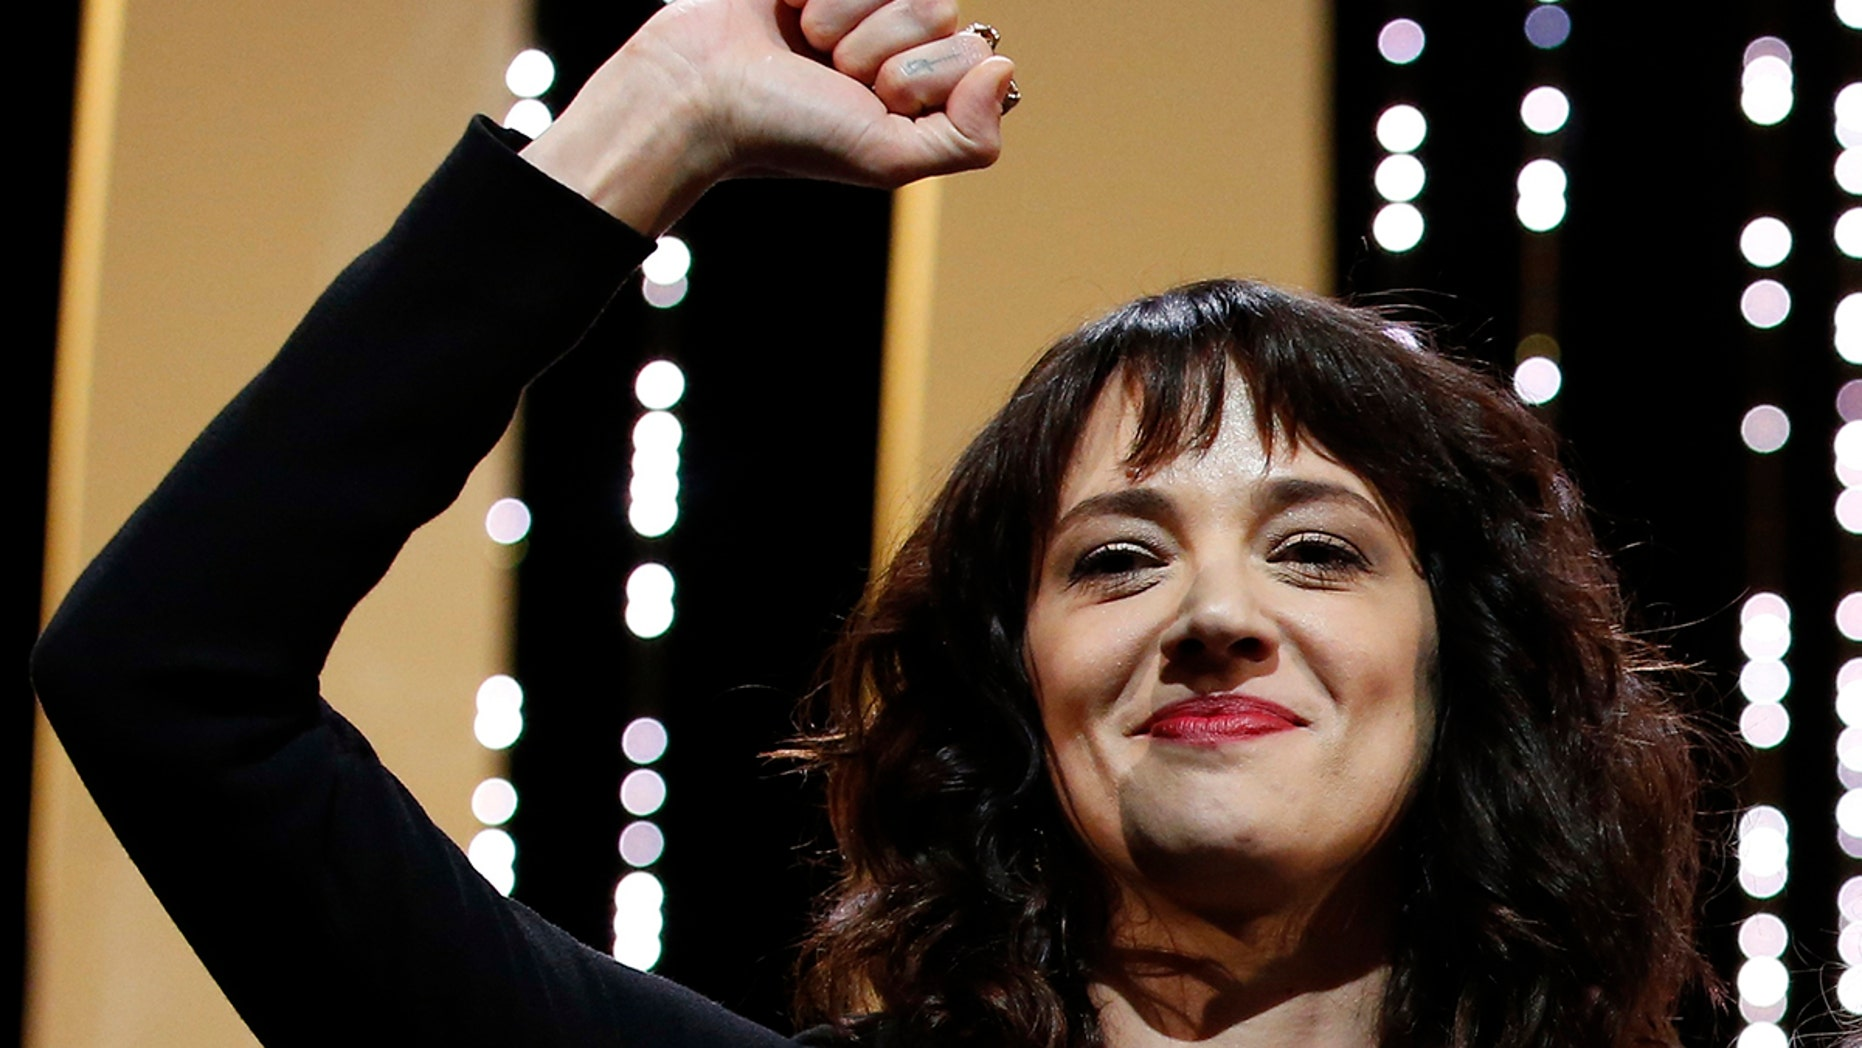 Asia Argento gave a speech calling out Harvey Weinstein at the Cannes Closing Ceremony.